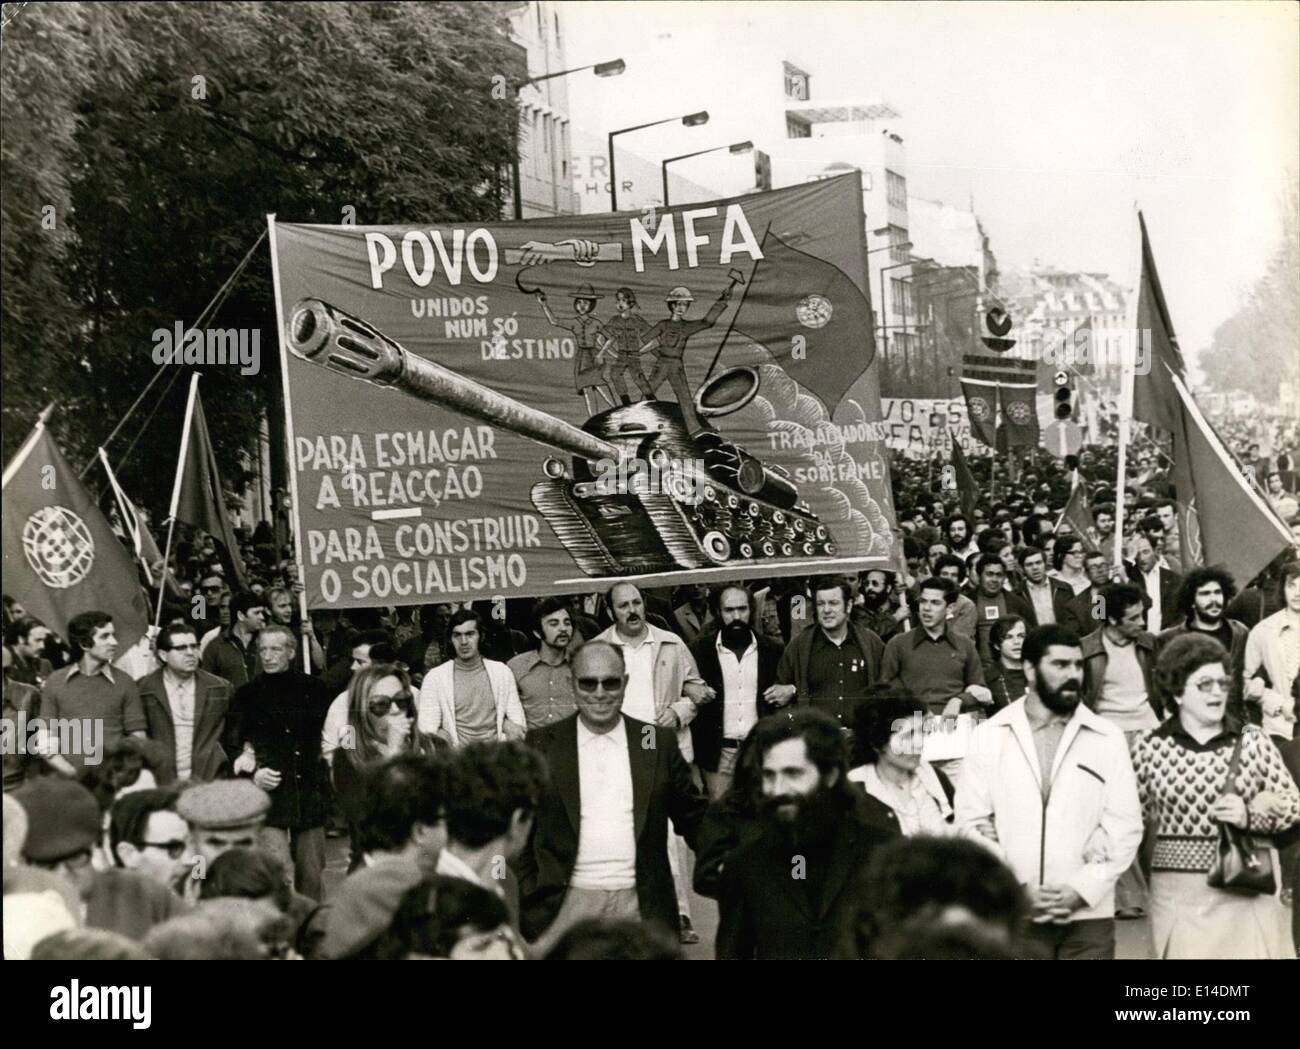 Apr. 18, 2012 - Big Demonstration in Lisbon Organized by ''PCP'' (Portuguese Comunist Party) in - Stock Image